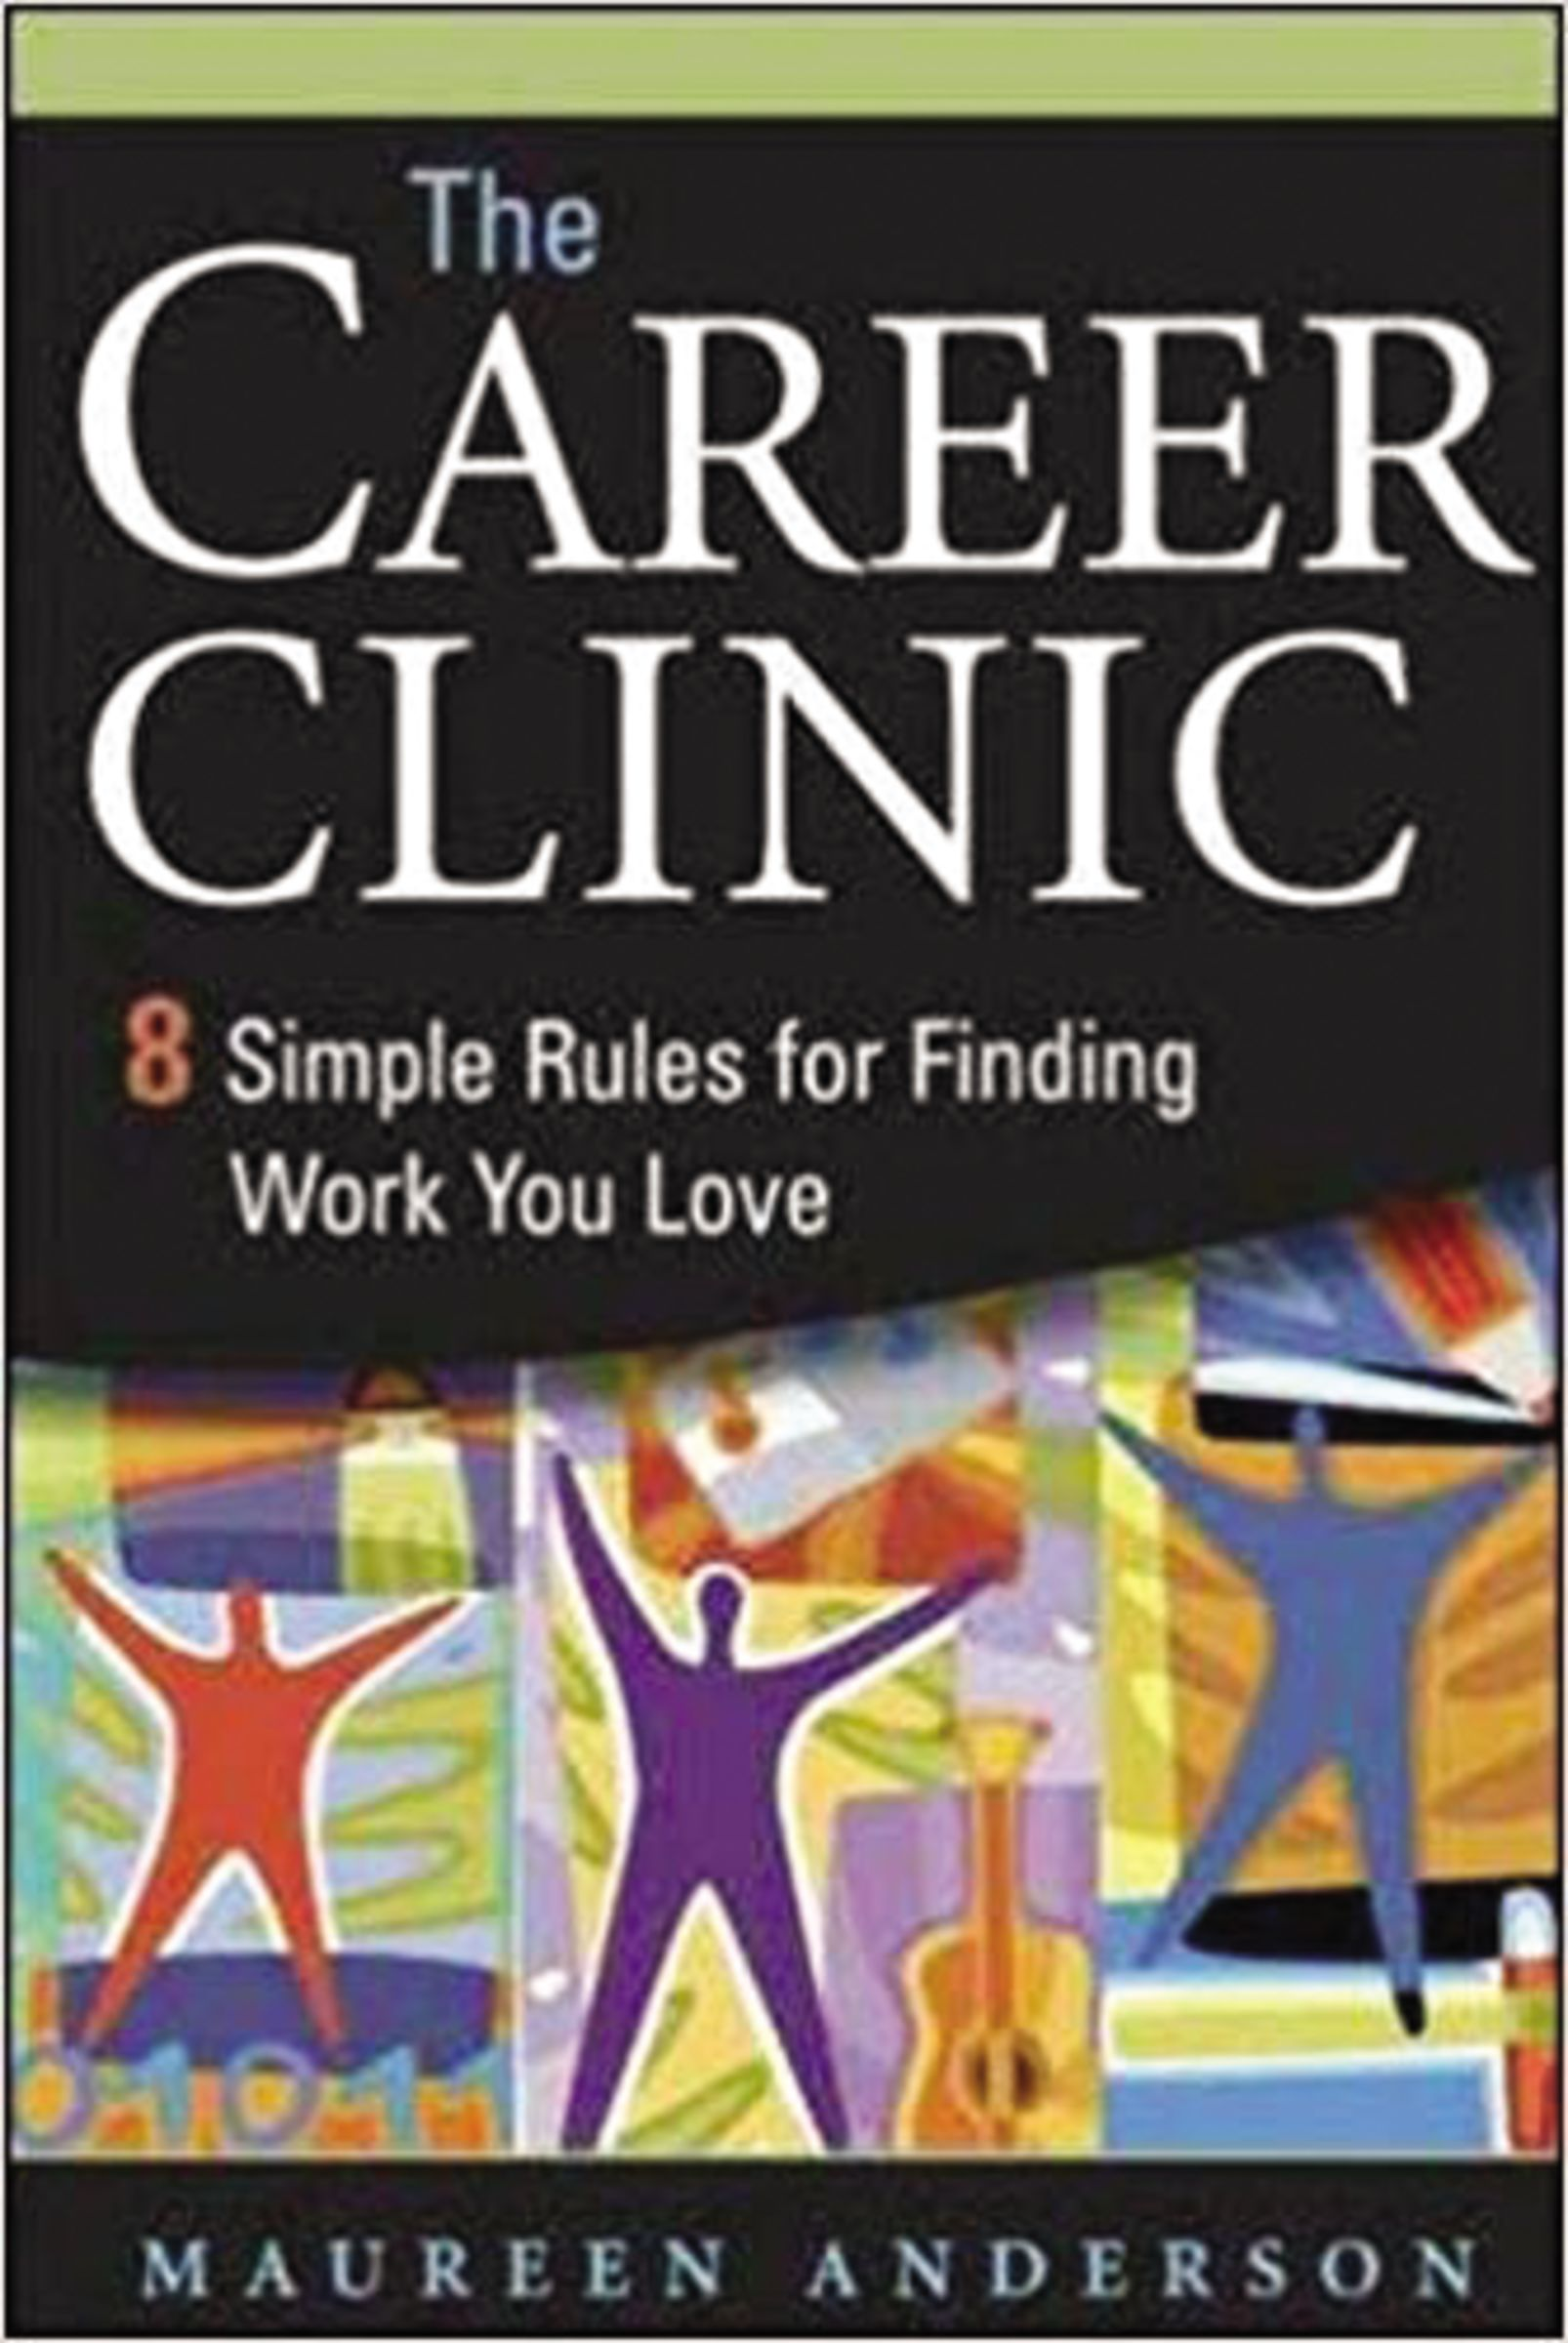 The Career Clinic